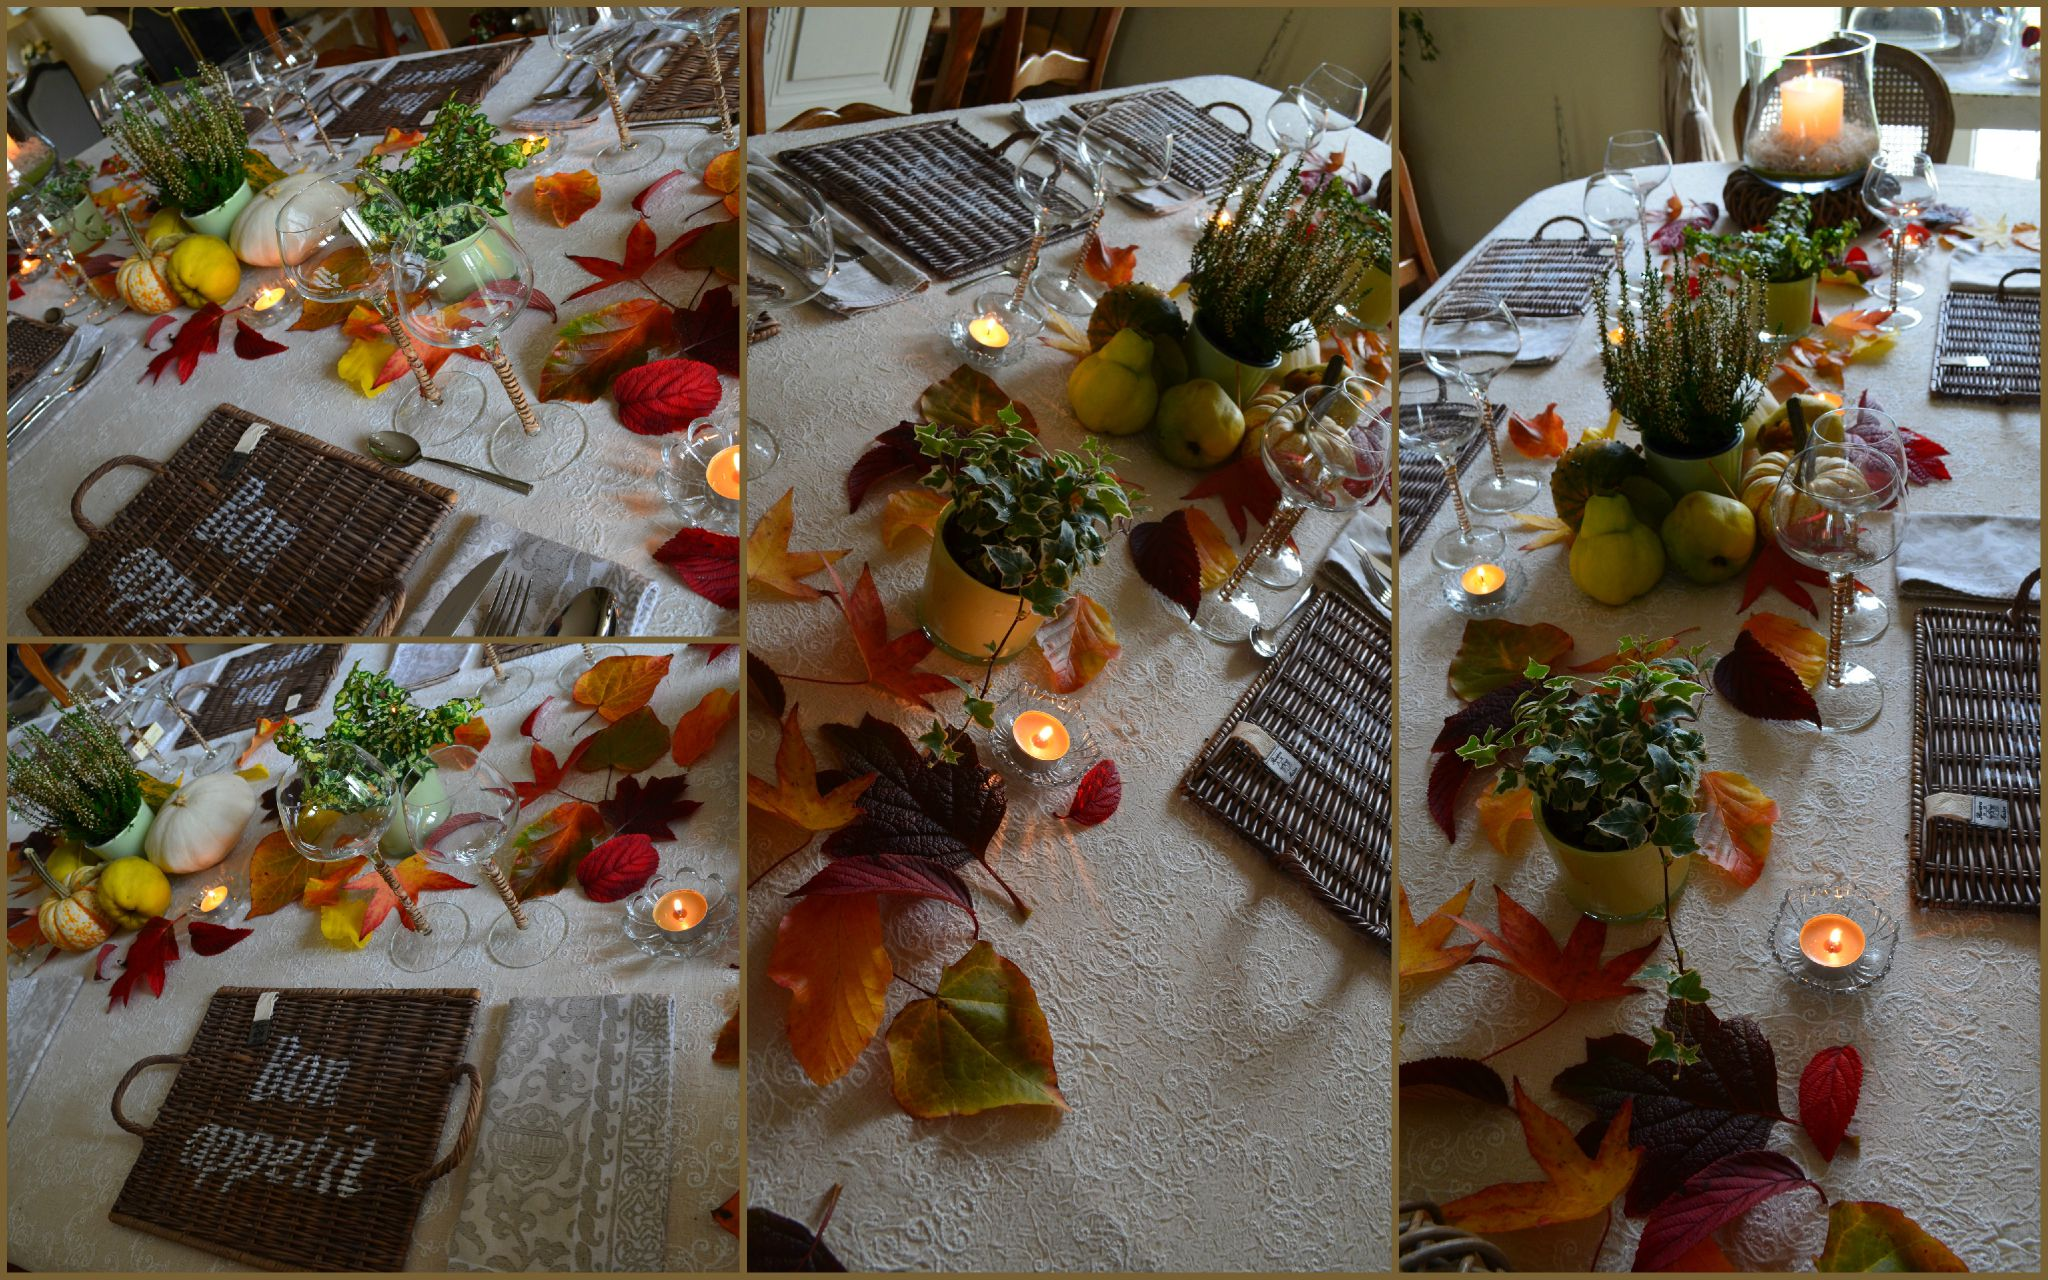 Decoration de table automne 28 images ma boutique d for Une fee d hiver